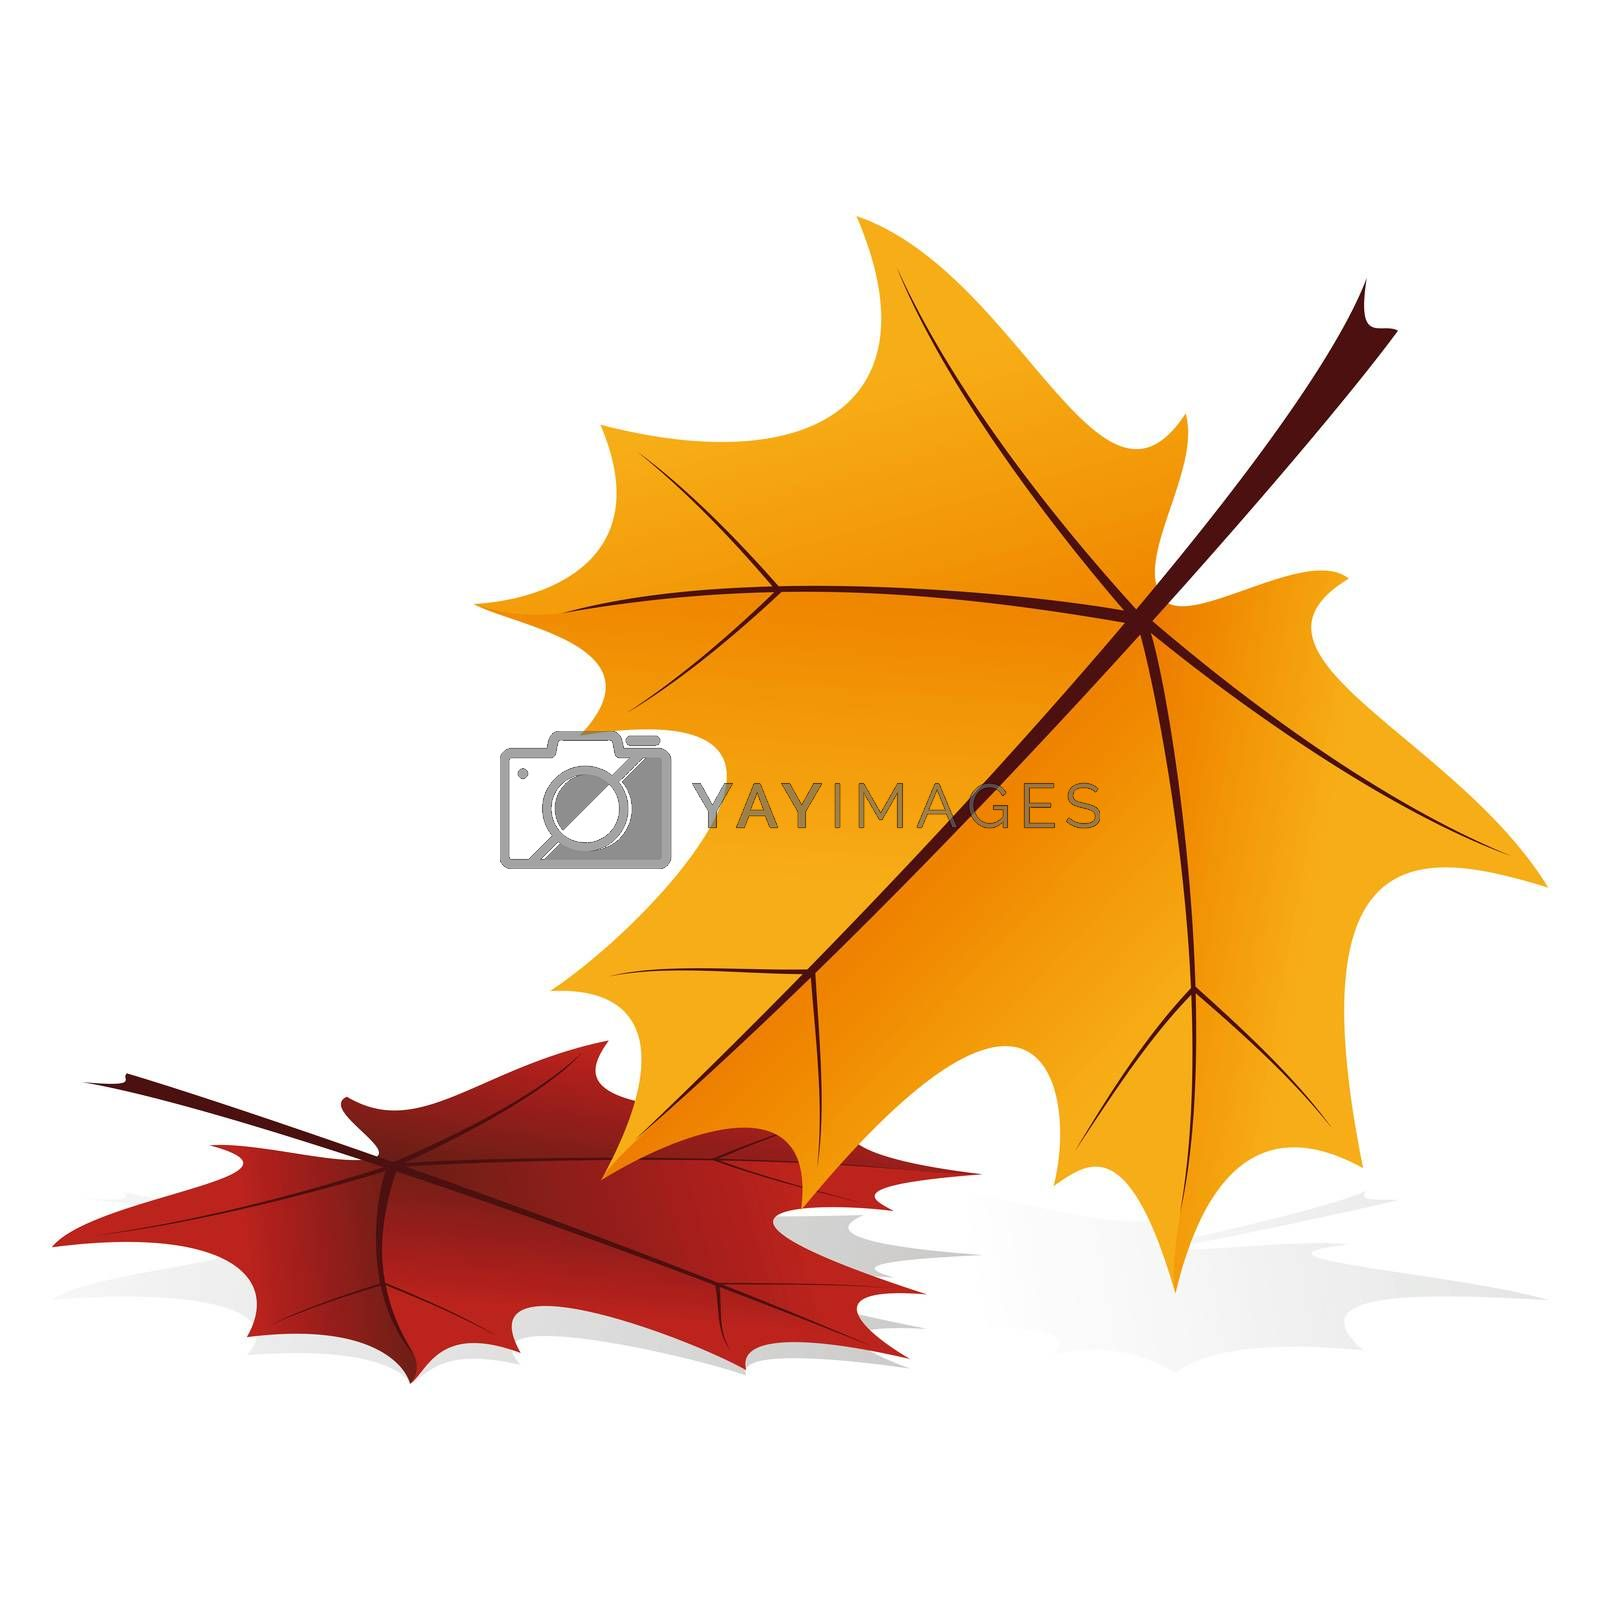 Autumn icon by WaD